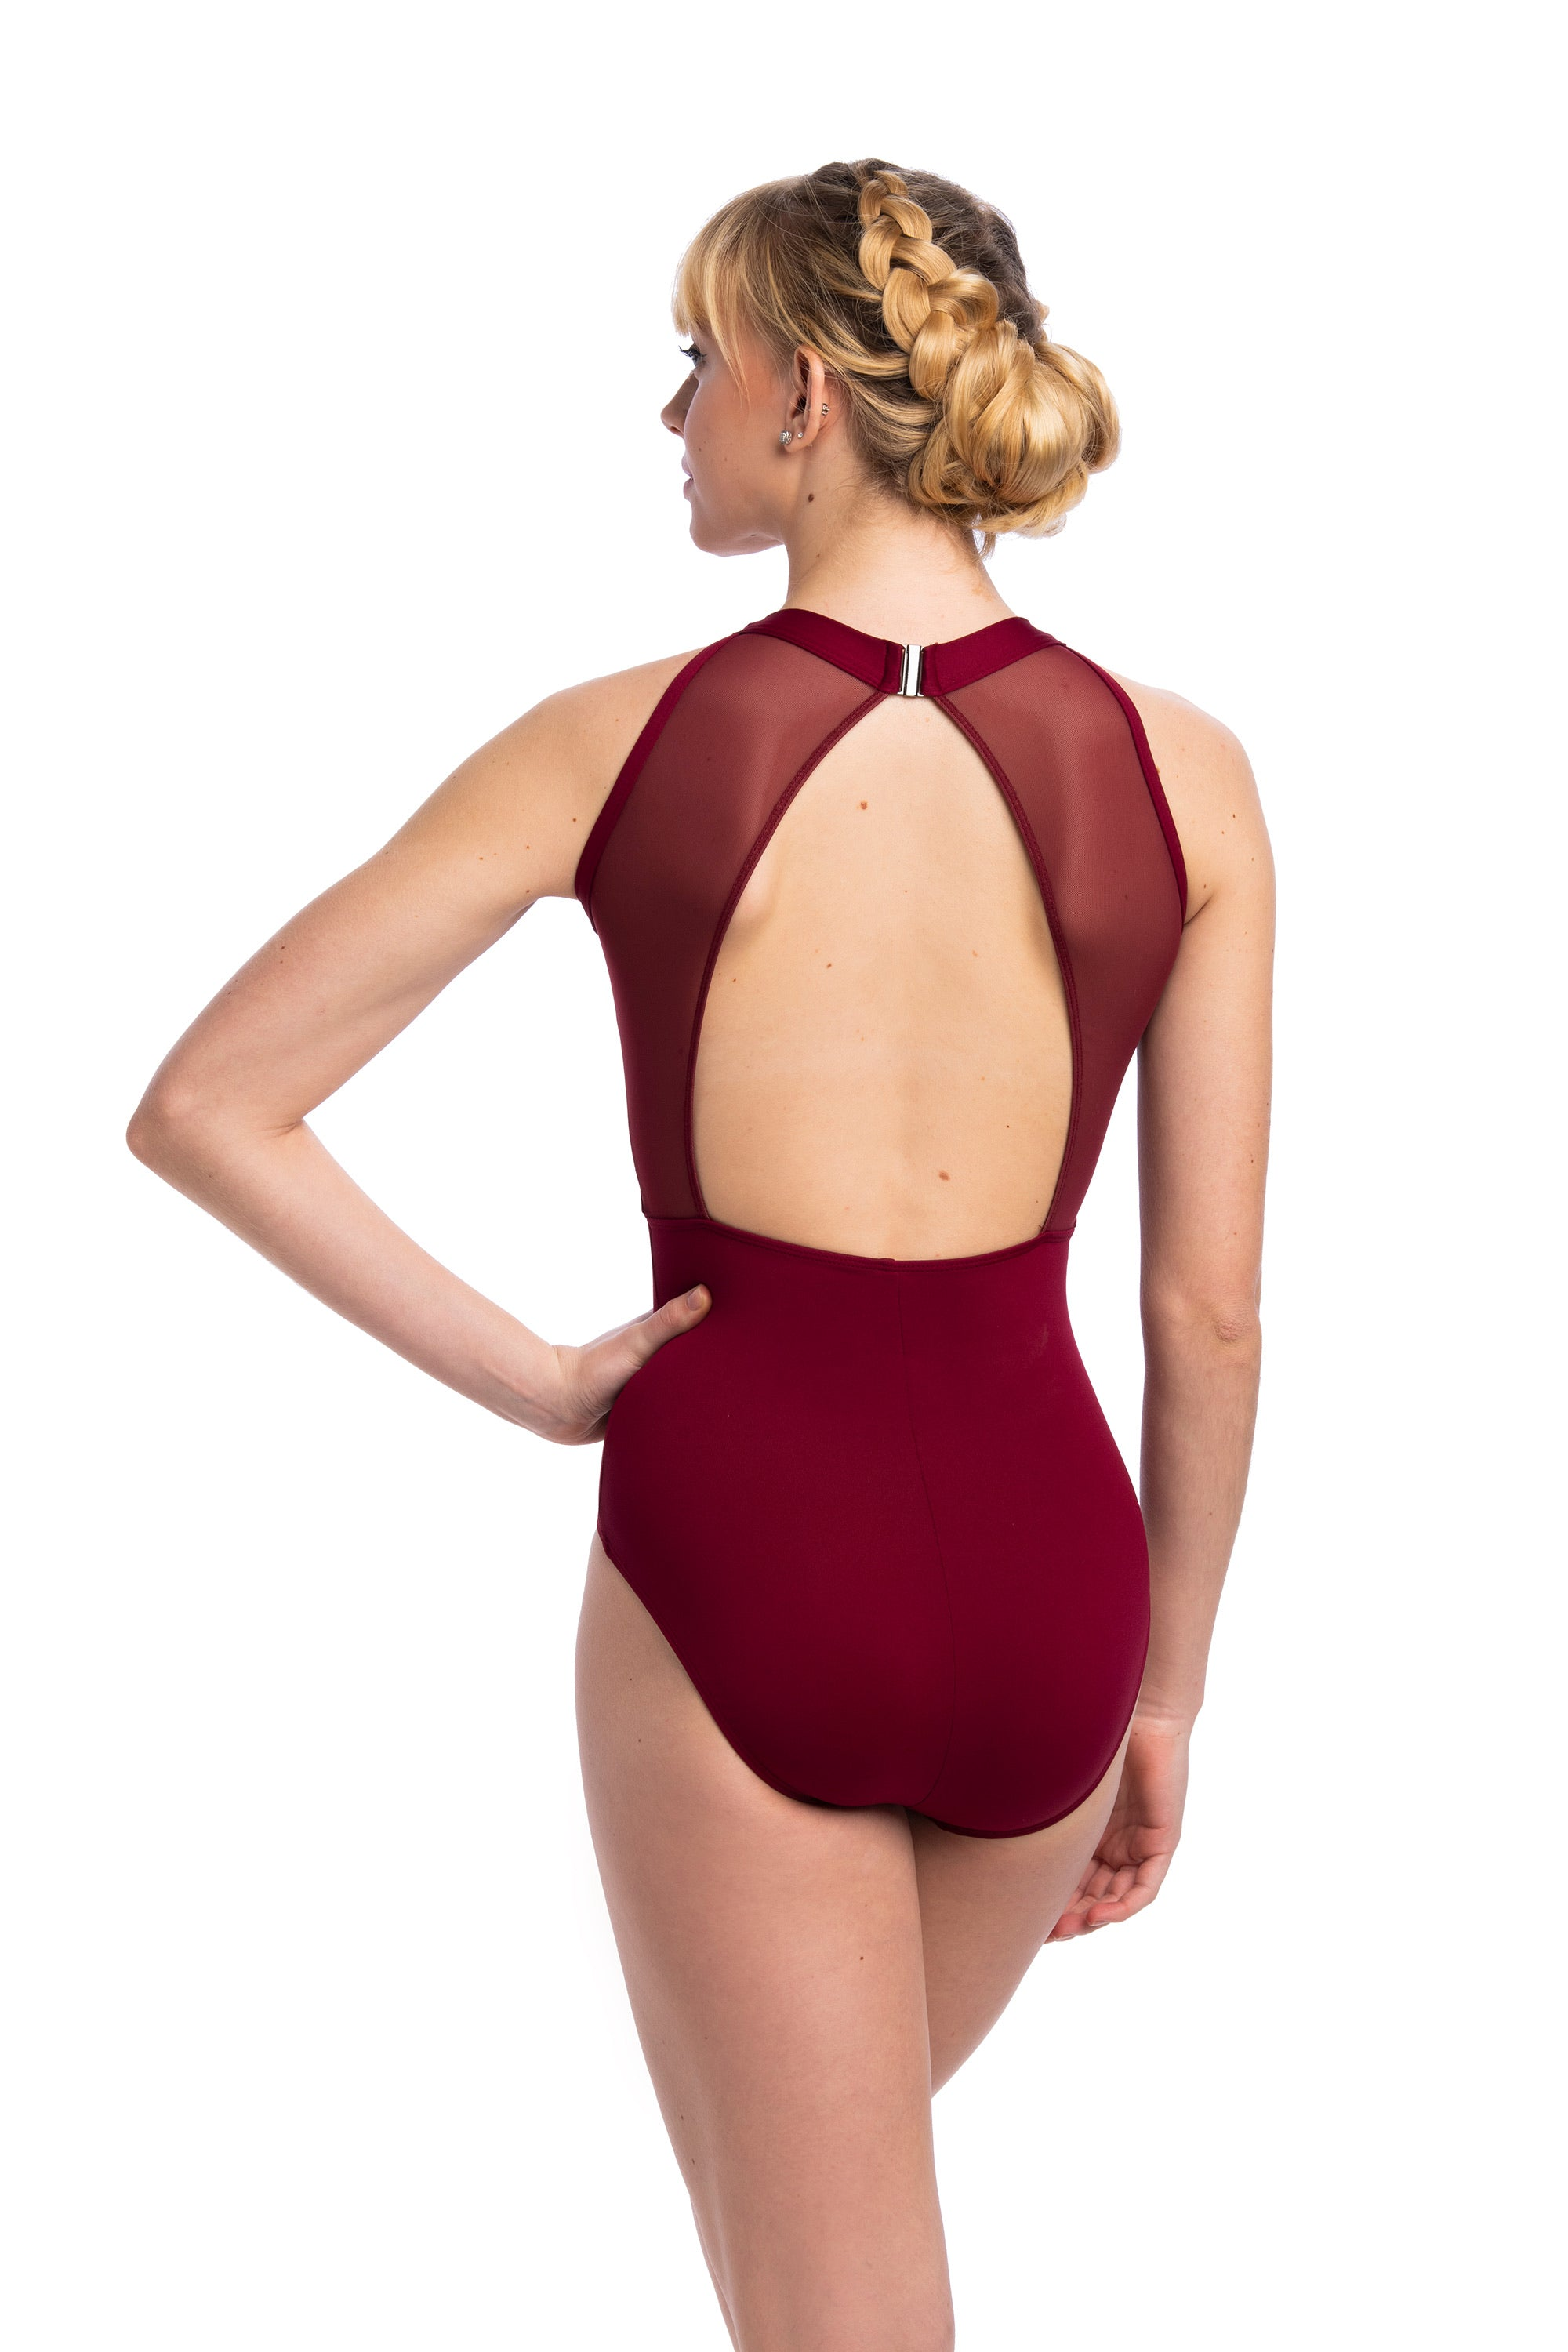 Zara Leotard with Mesh- Limited Edition*